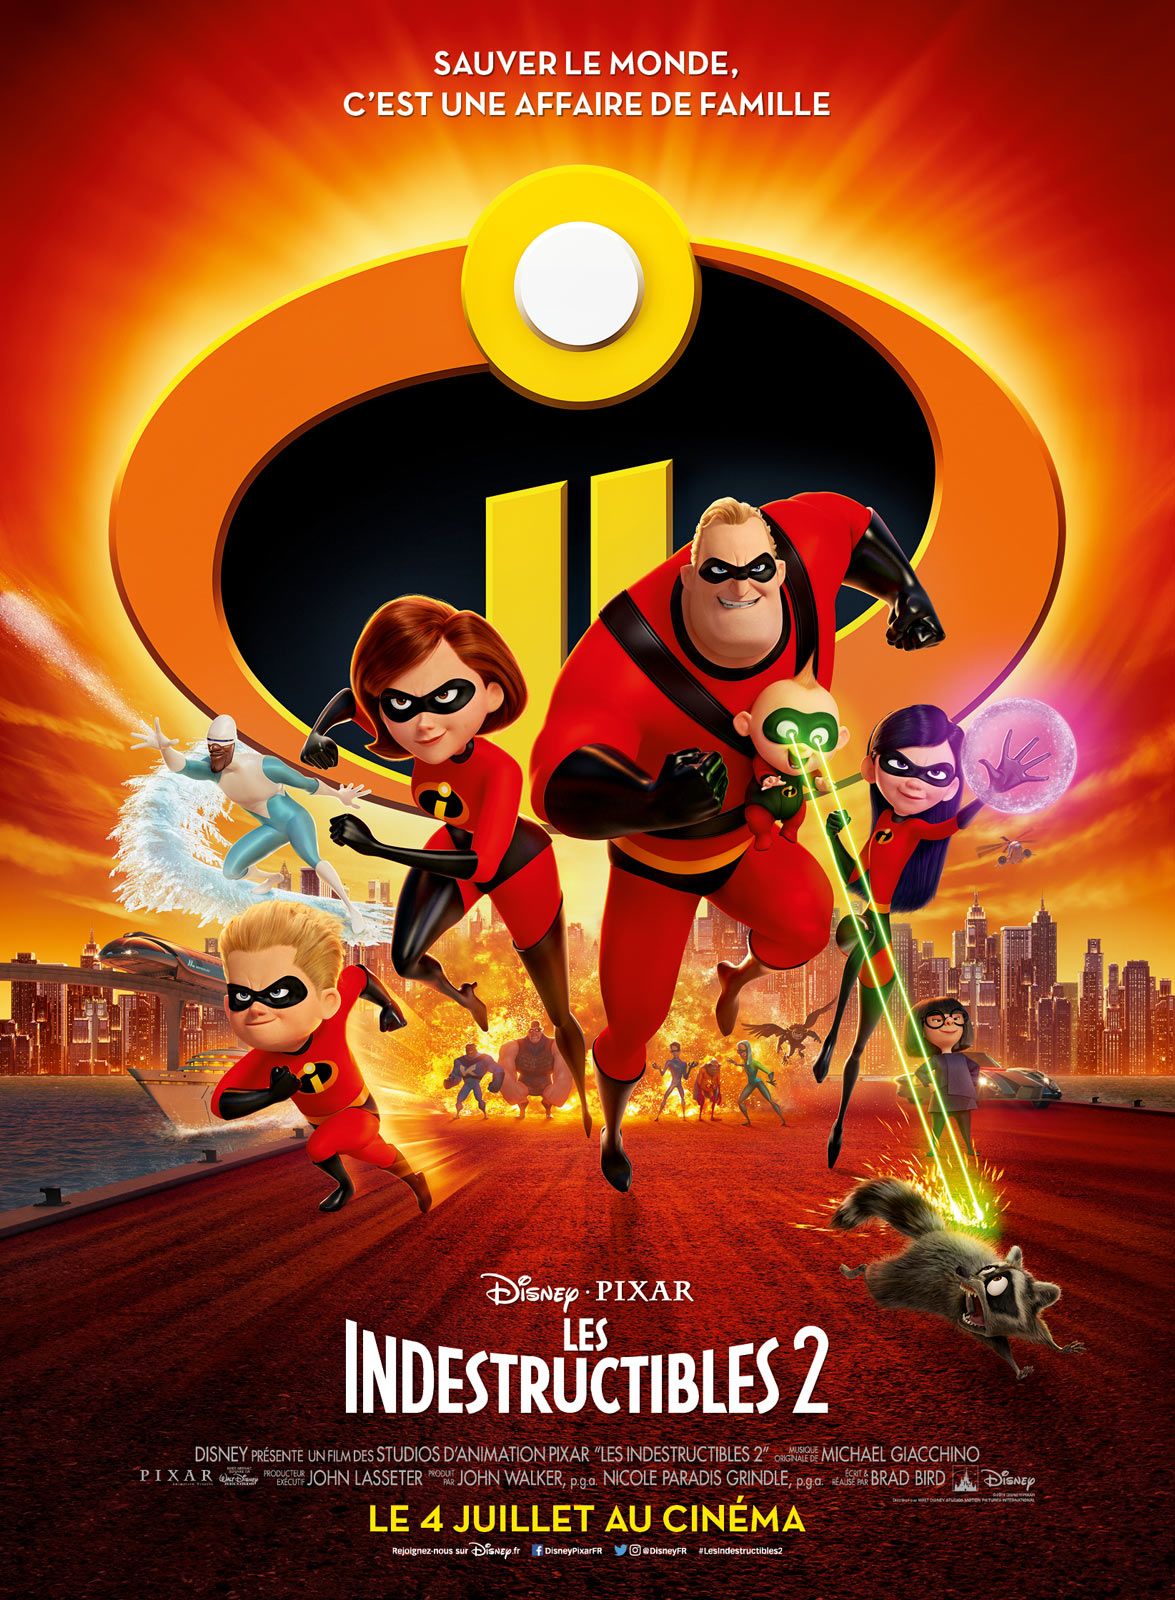 Image du film Les Indestructibles 2